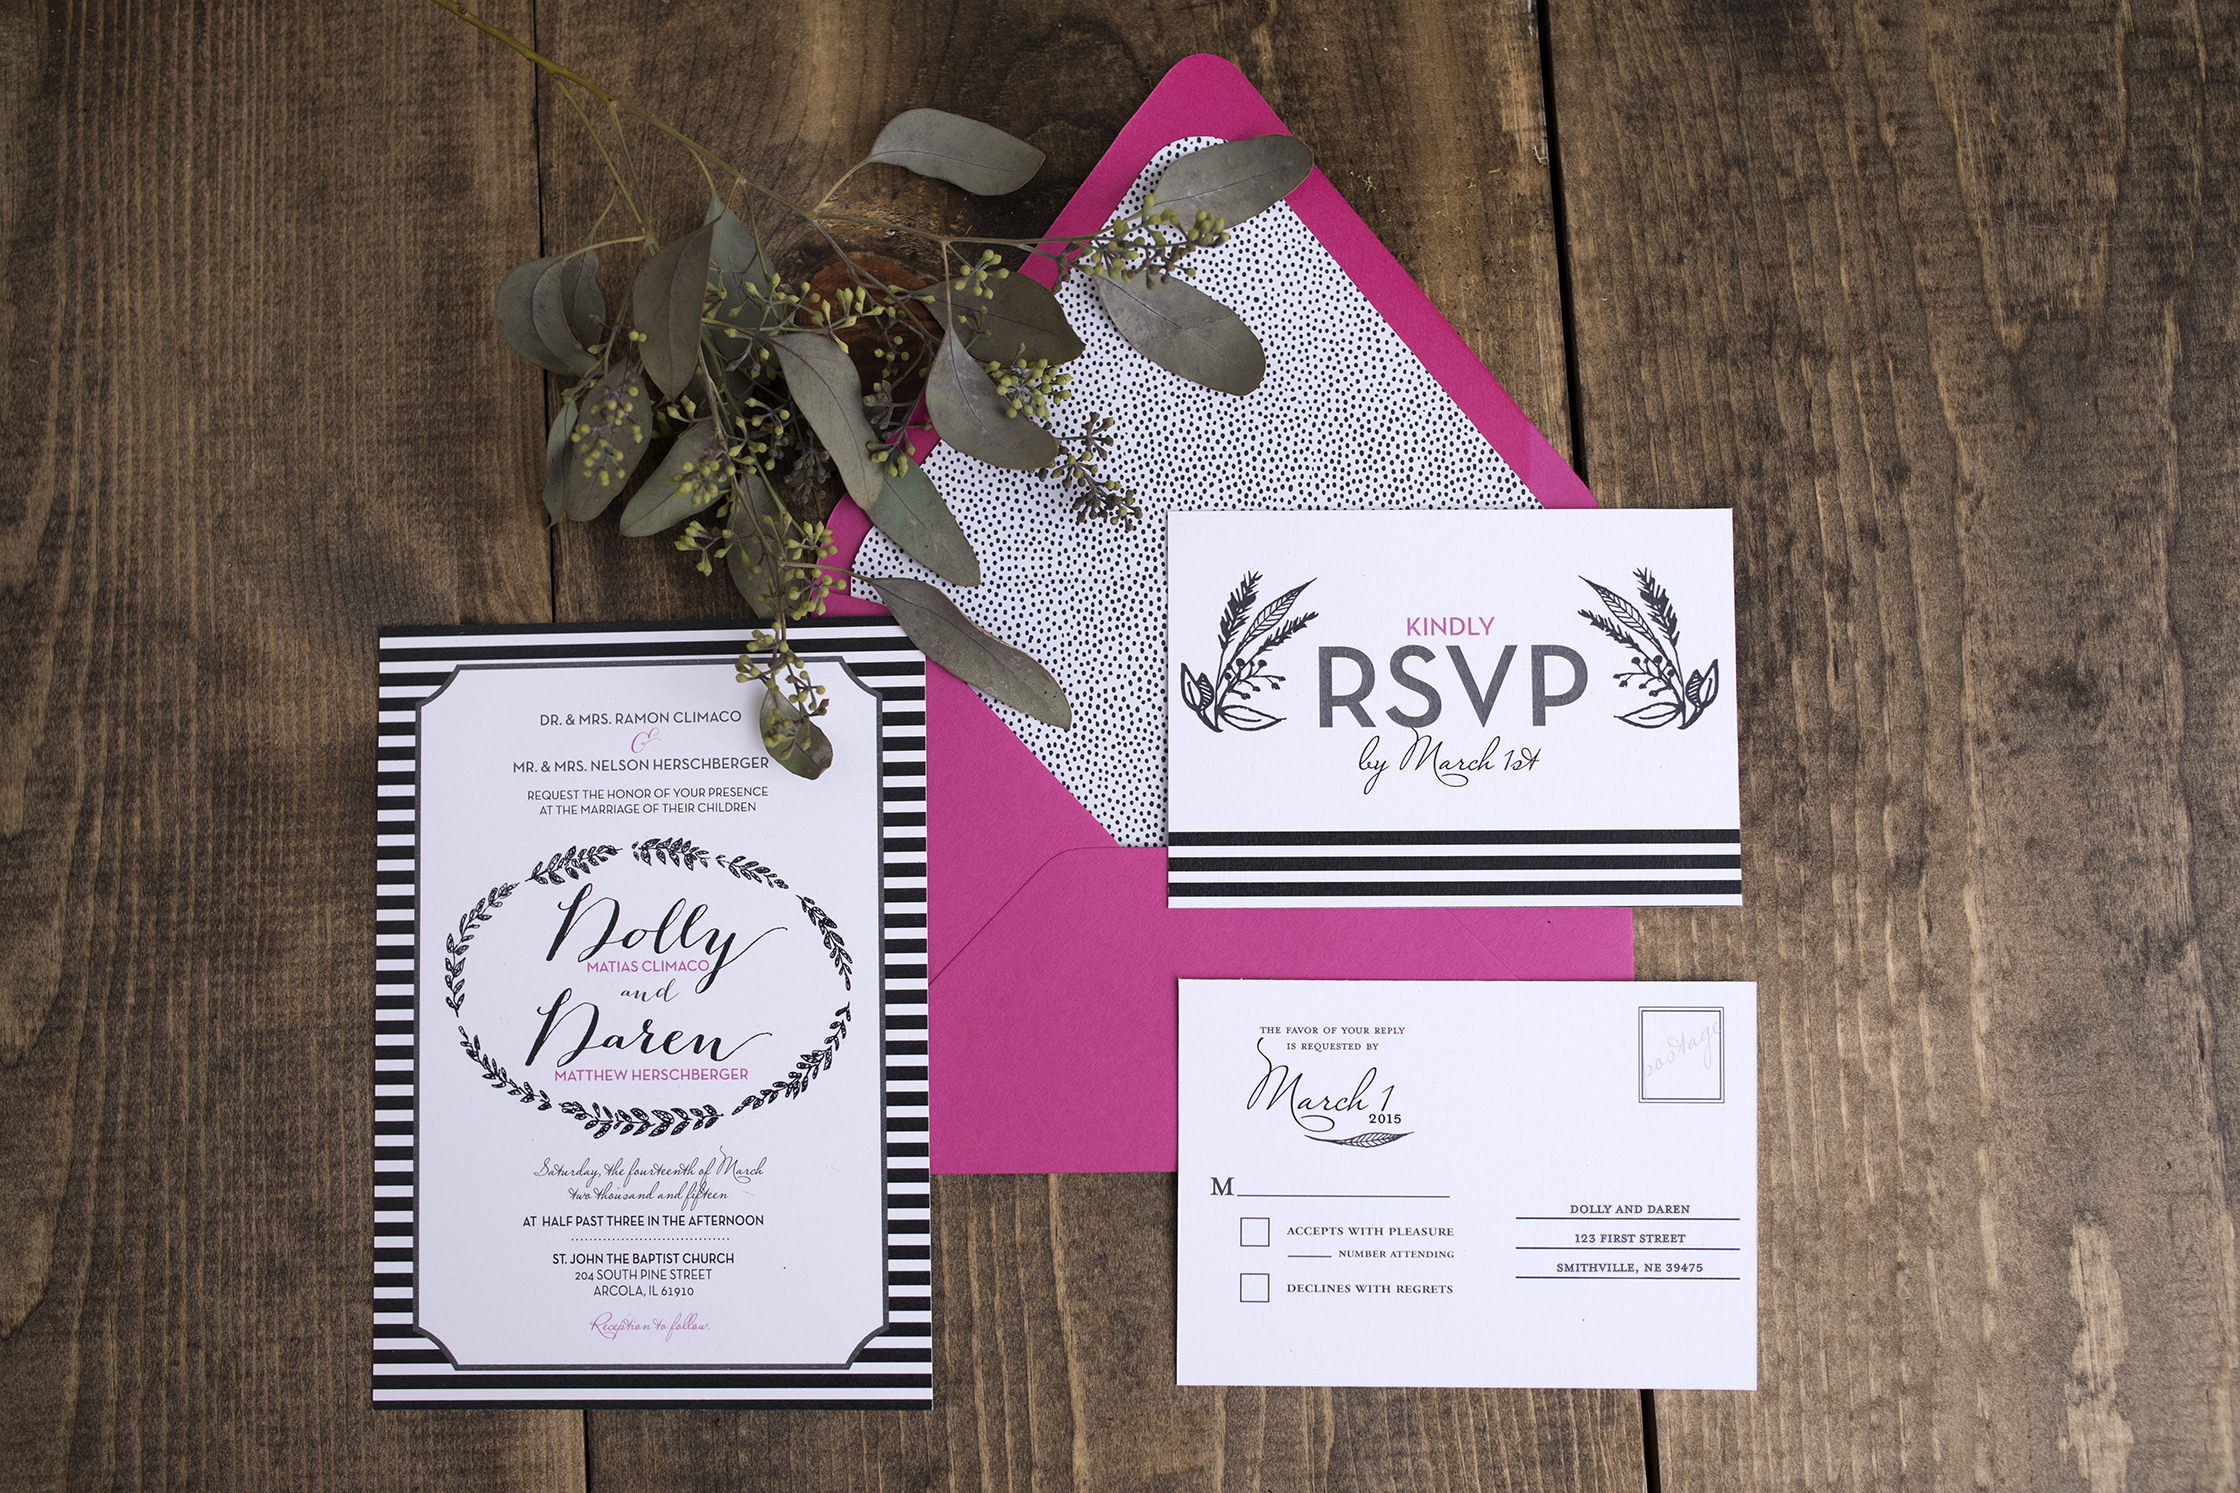 Wedding invitation design kelly graves design custom and template invitation design stopboris